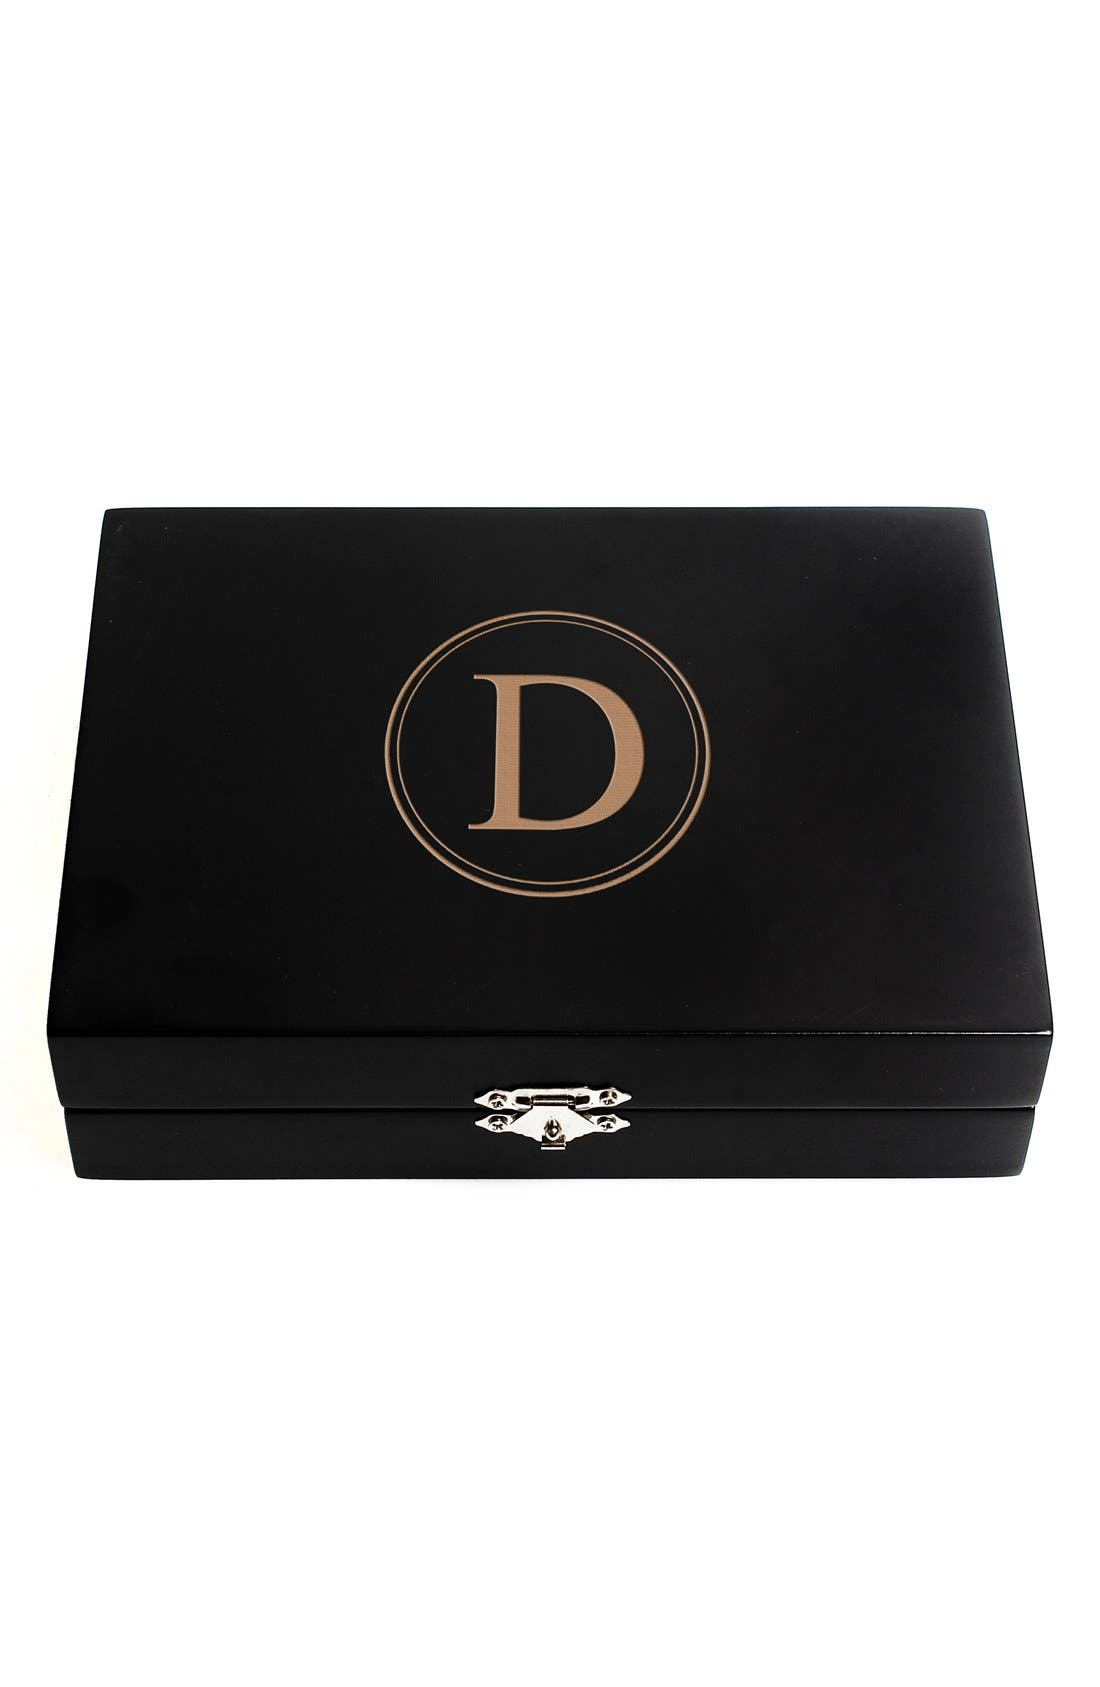 Monogram Wooden Jewelry Box,                             Main thumbnail 6, color,